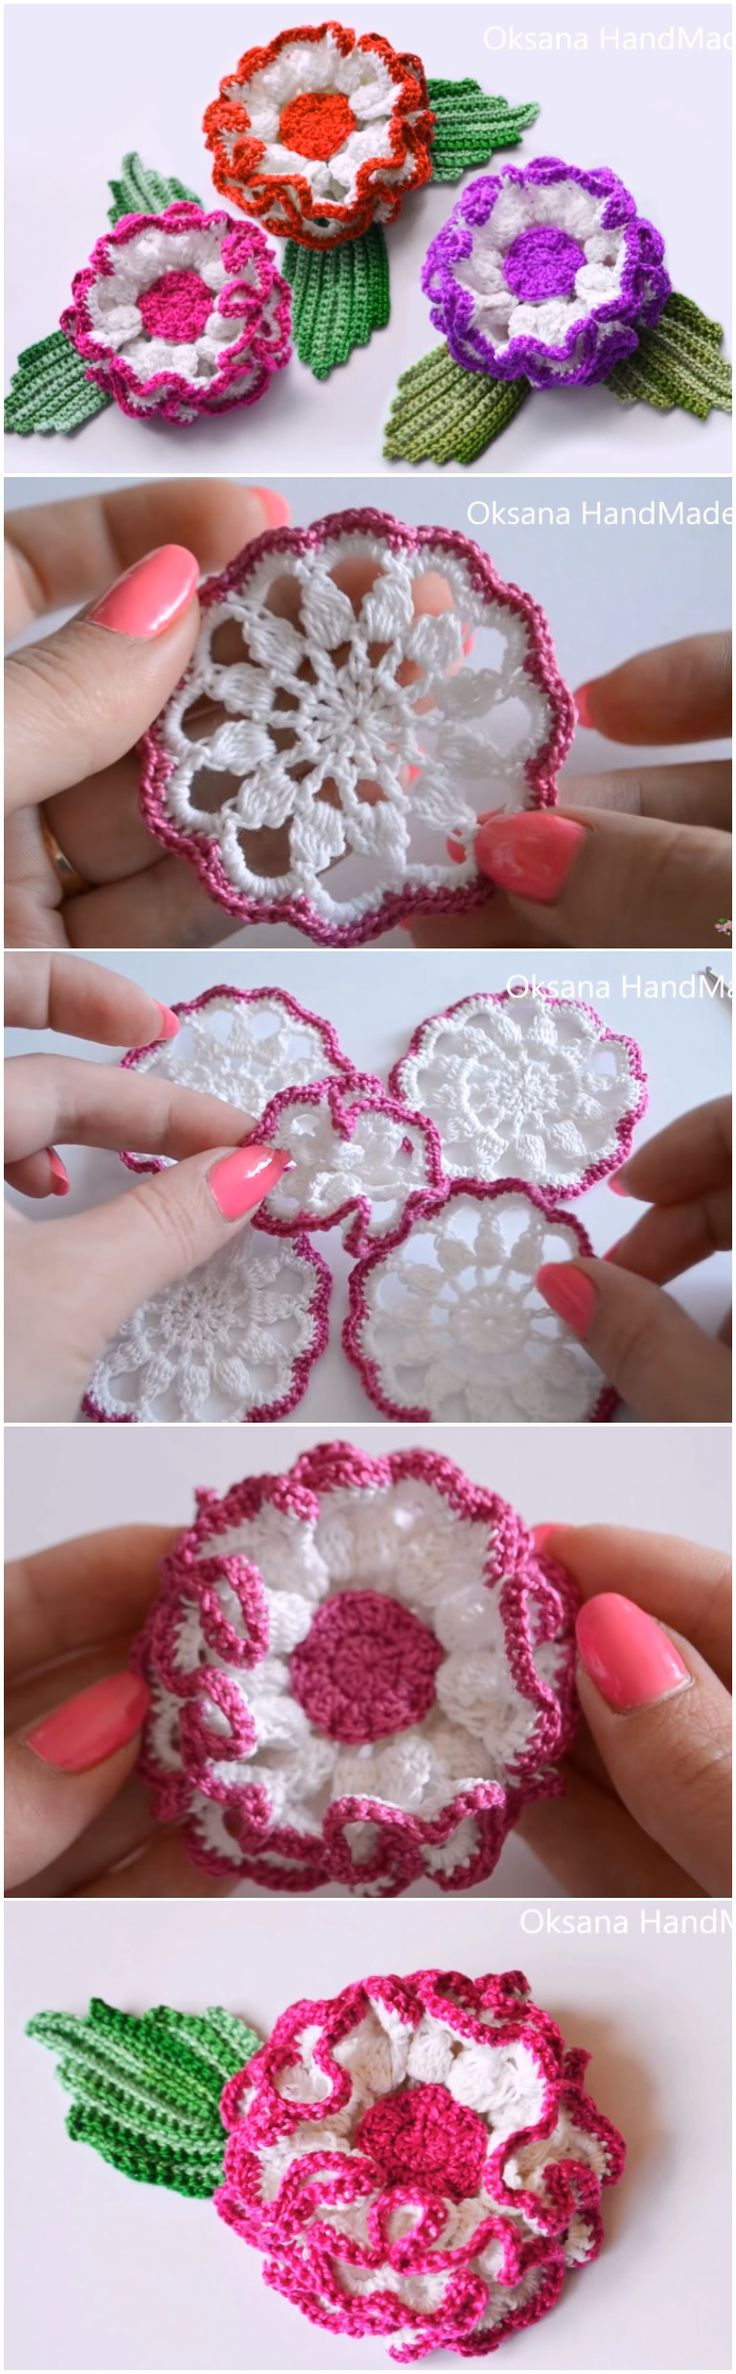 The 25 best daisy flowers ideas on pinterest daisy paint crochet daisy flower step by step dhlflorist Images